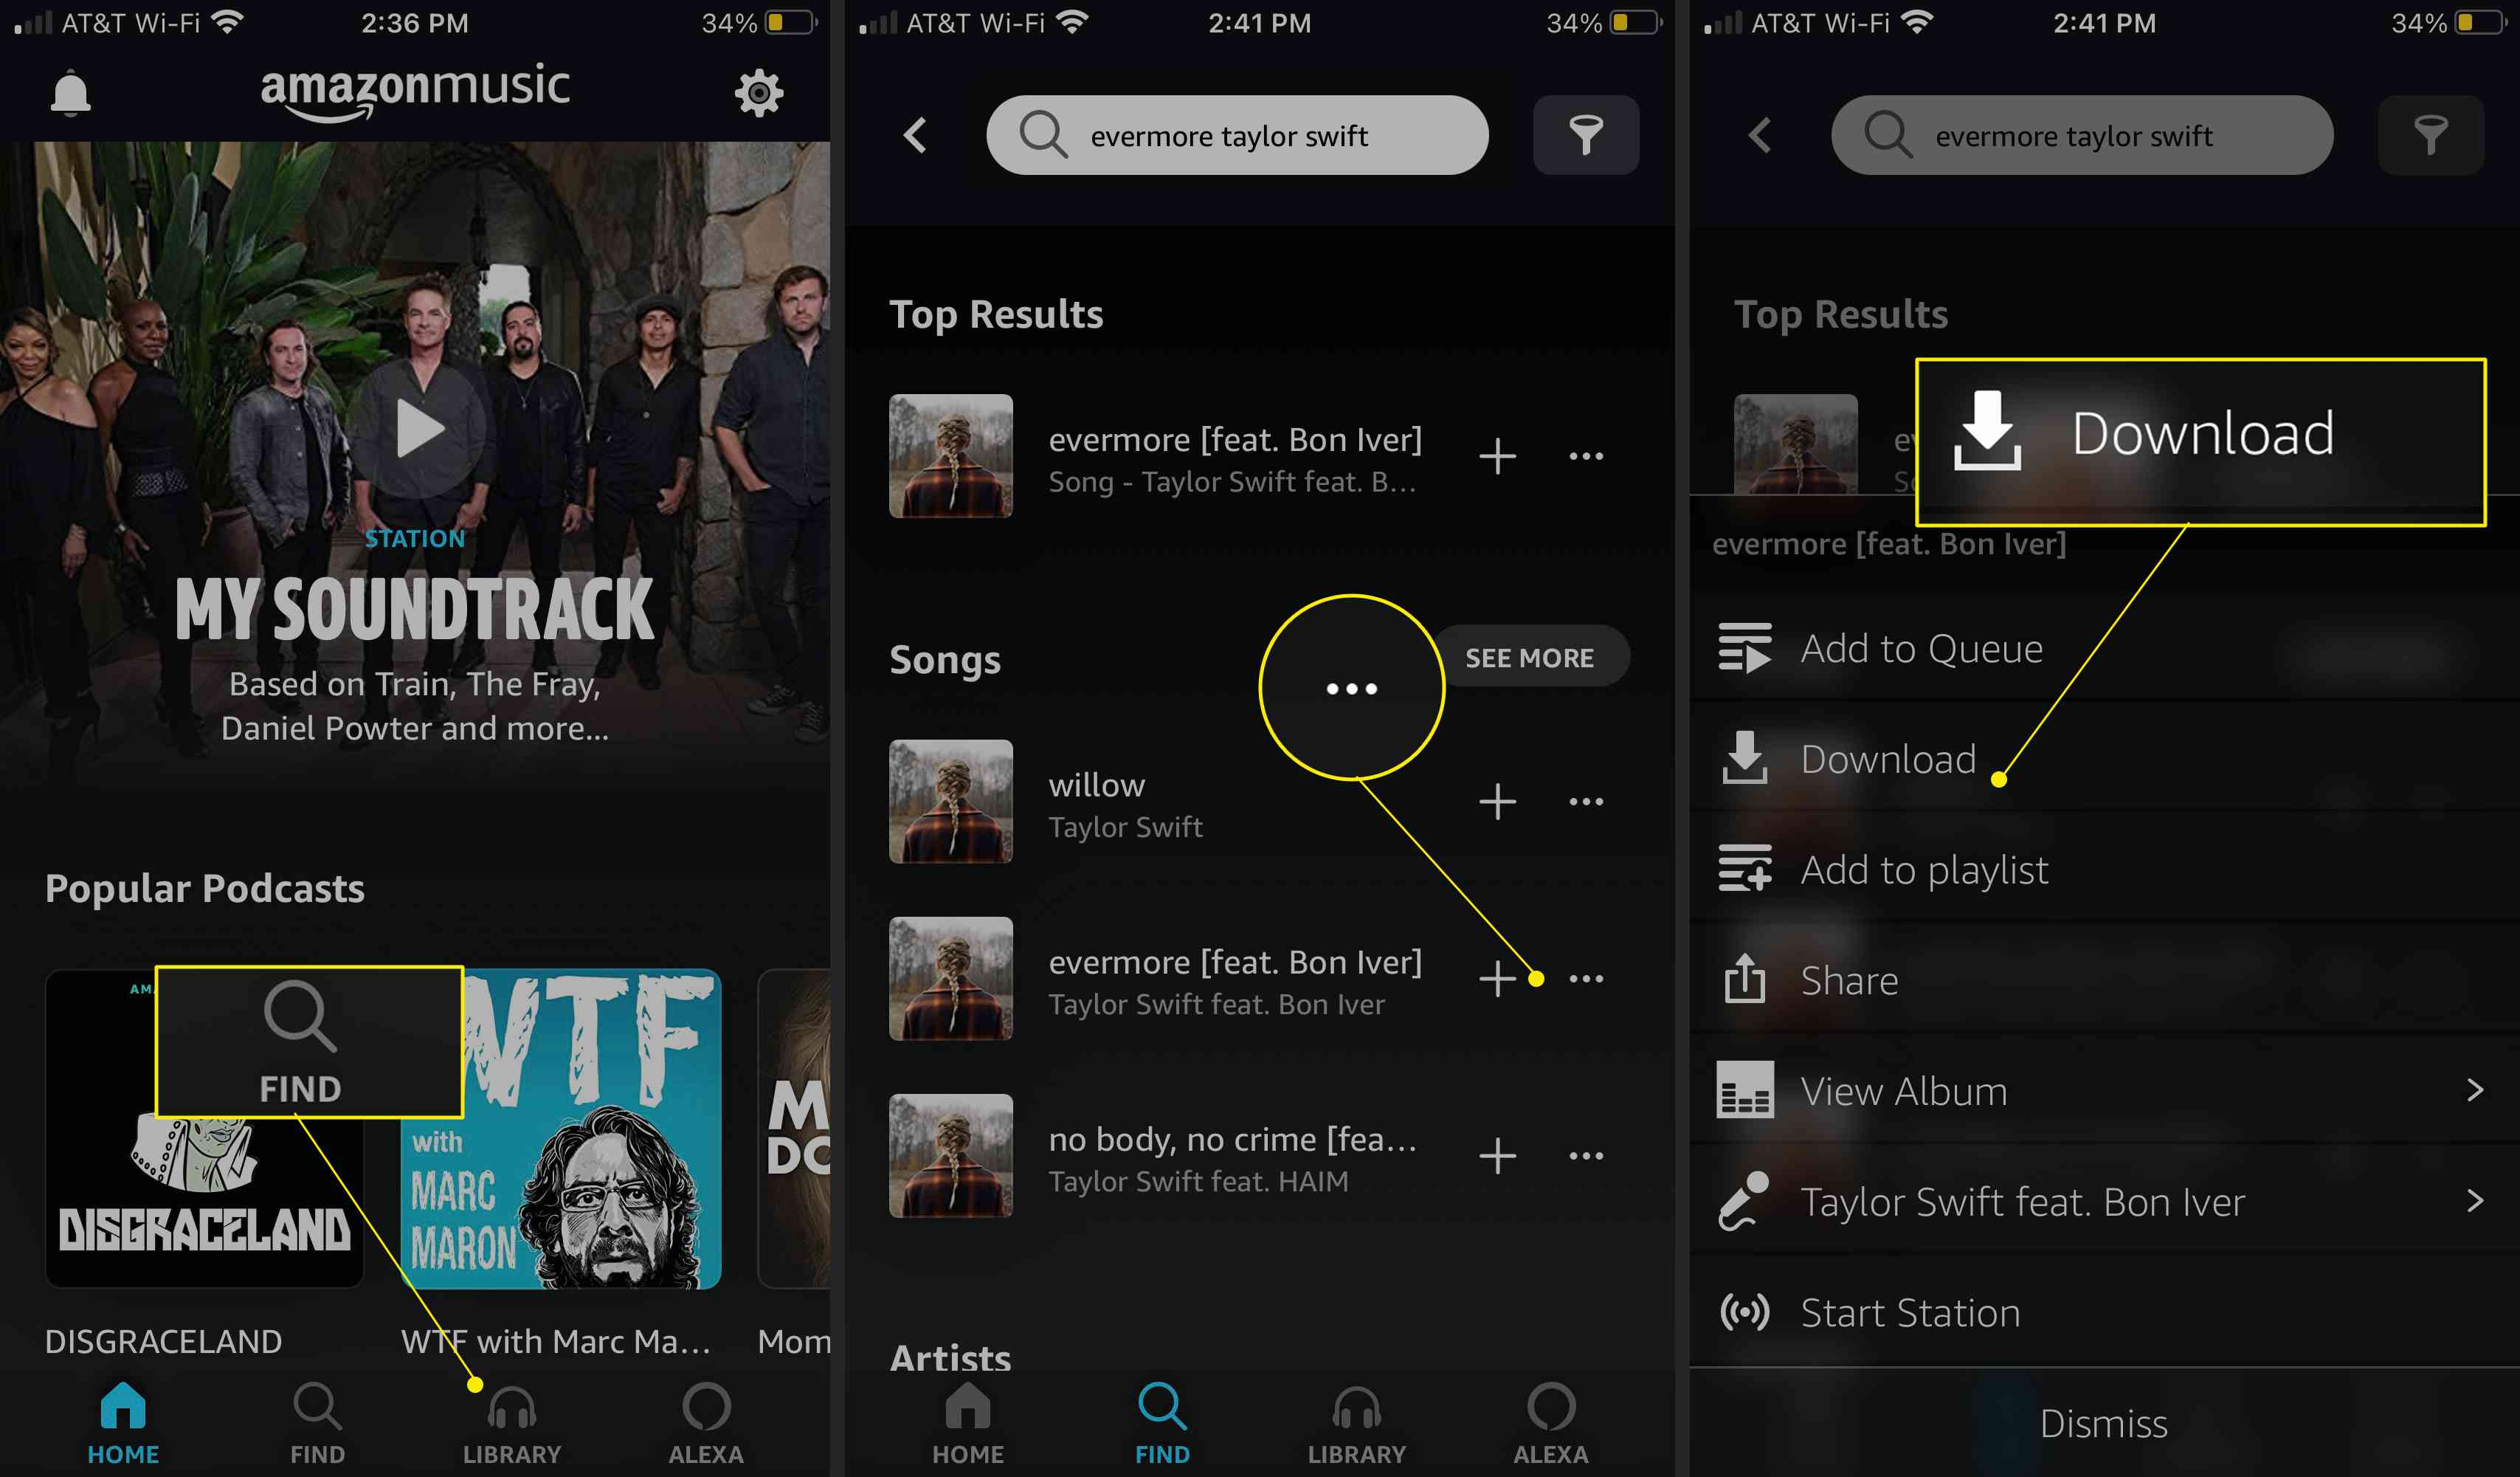 Amazon Music app with Find, More Options (three dots) and Download highlighted